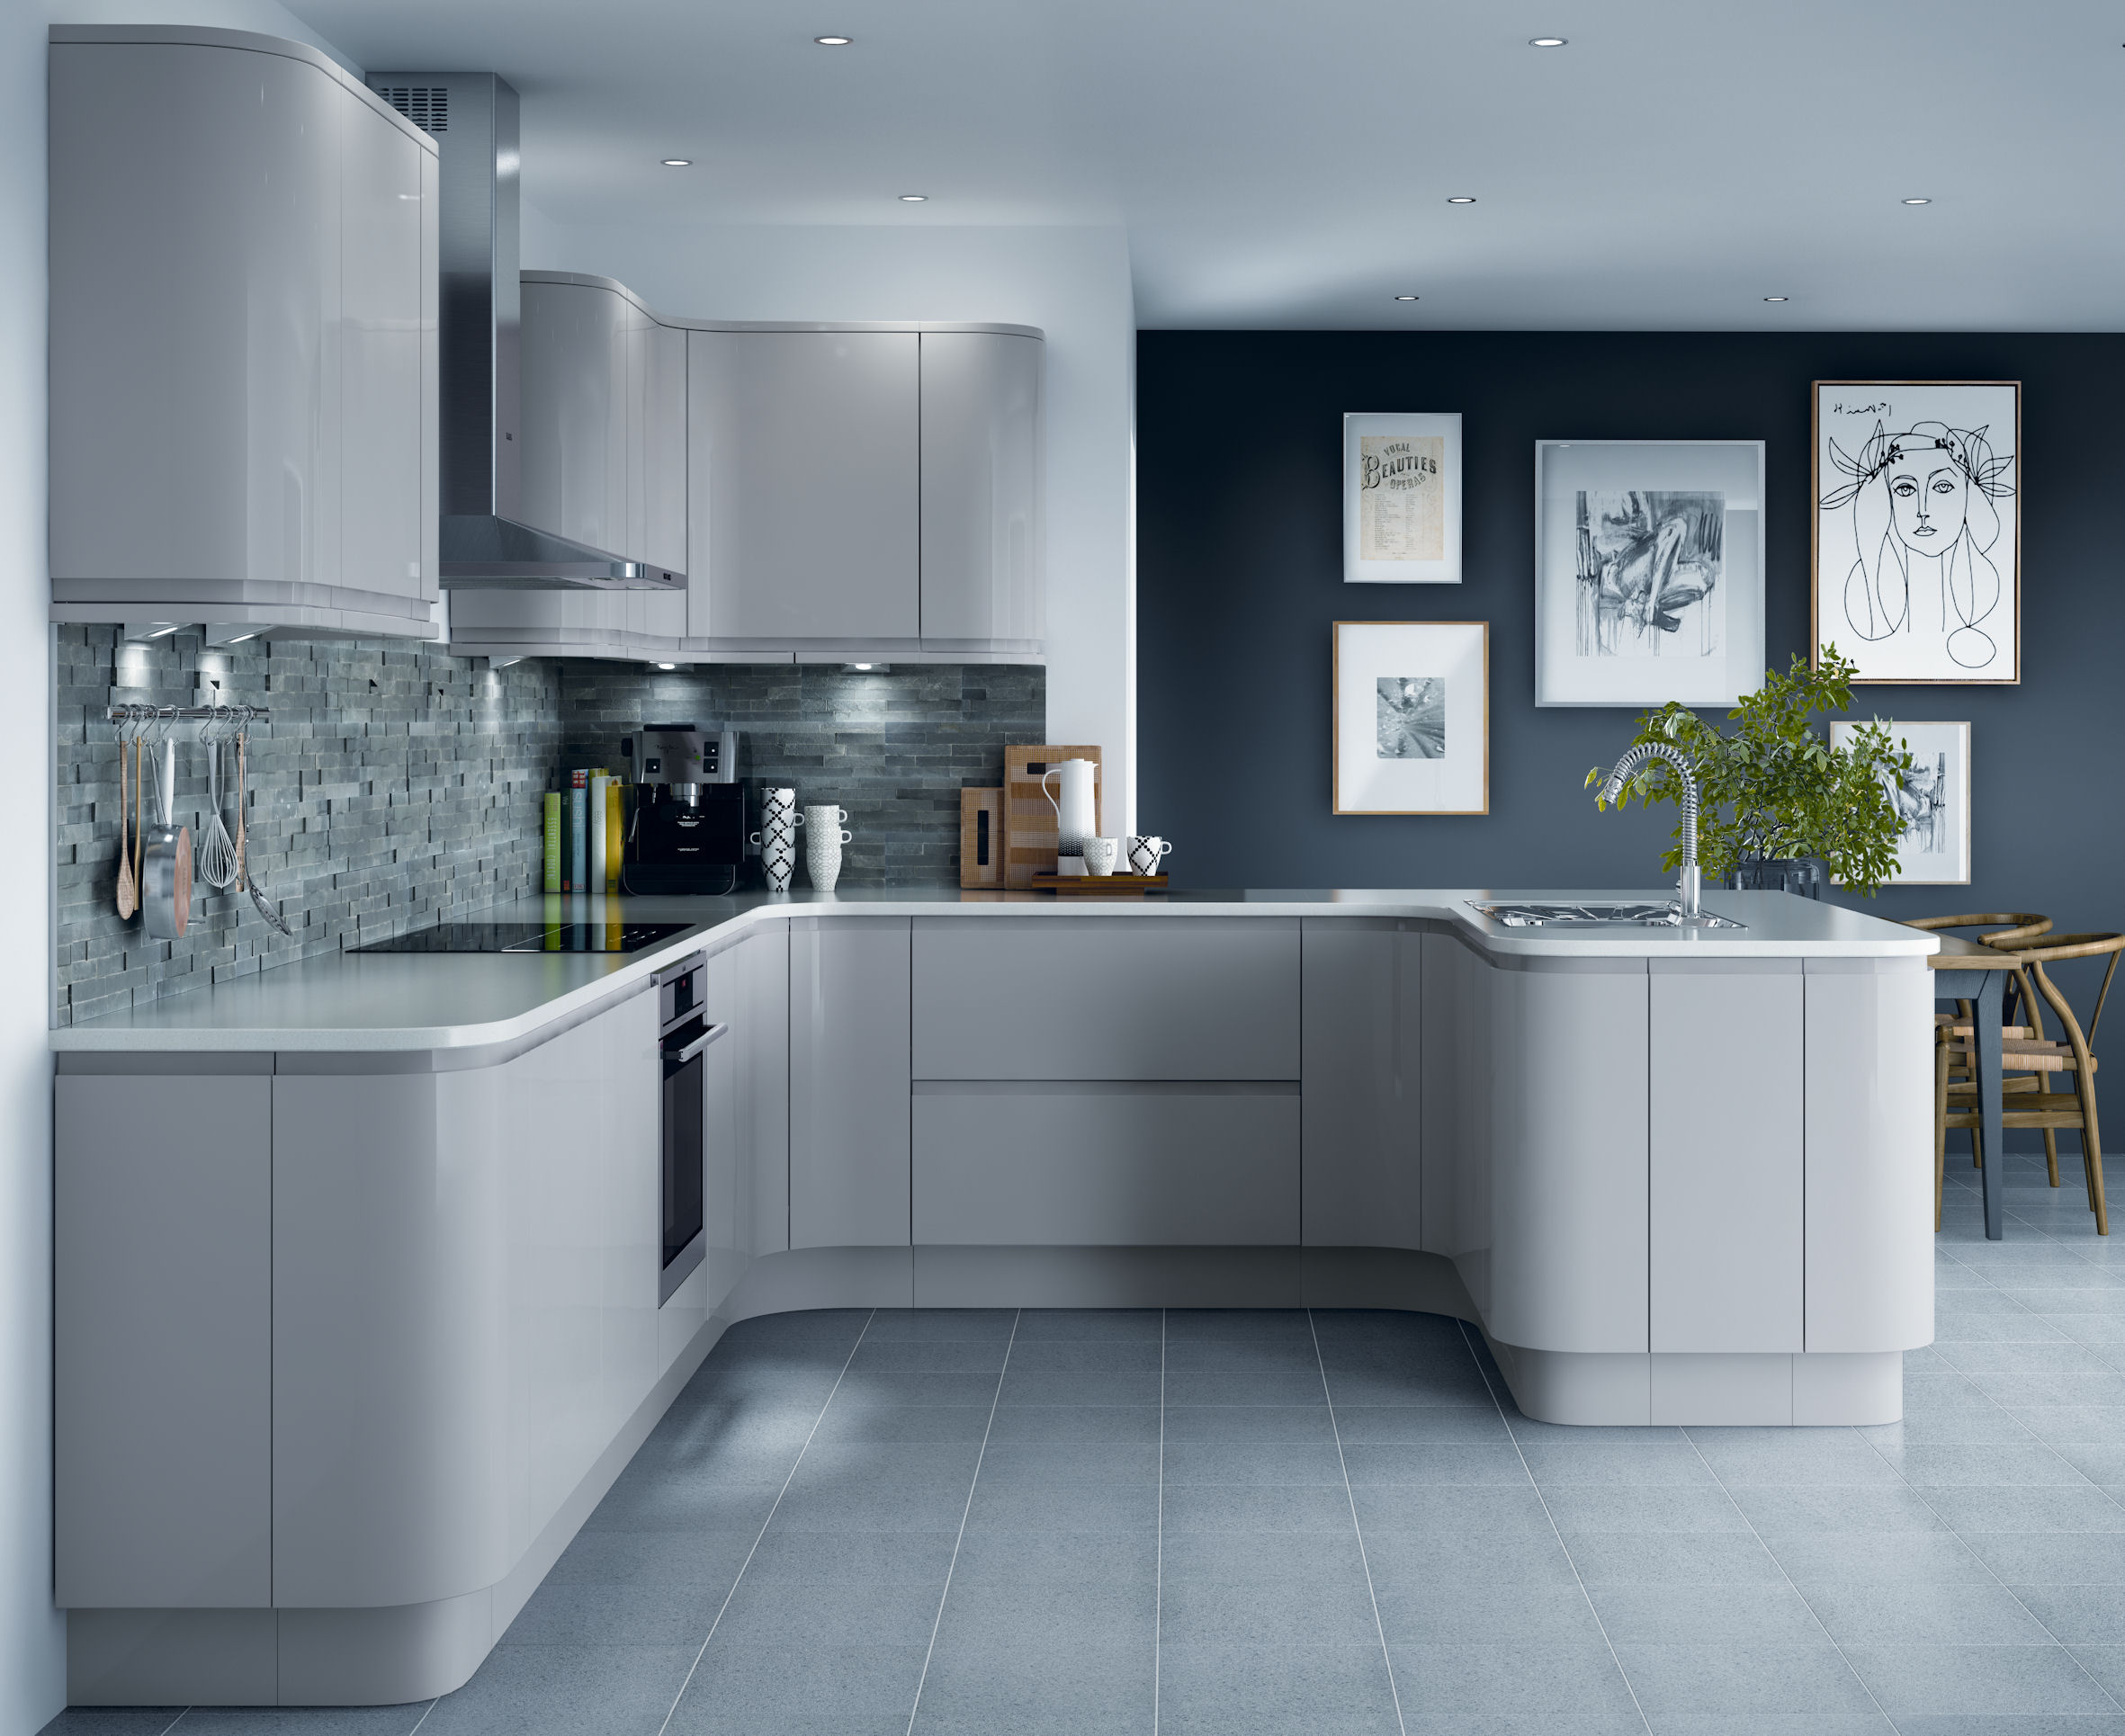 Wickes Kitchen Flooring Dividing Your Open Plan Living Space Property Price Advice